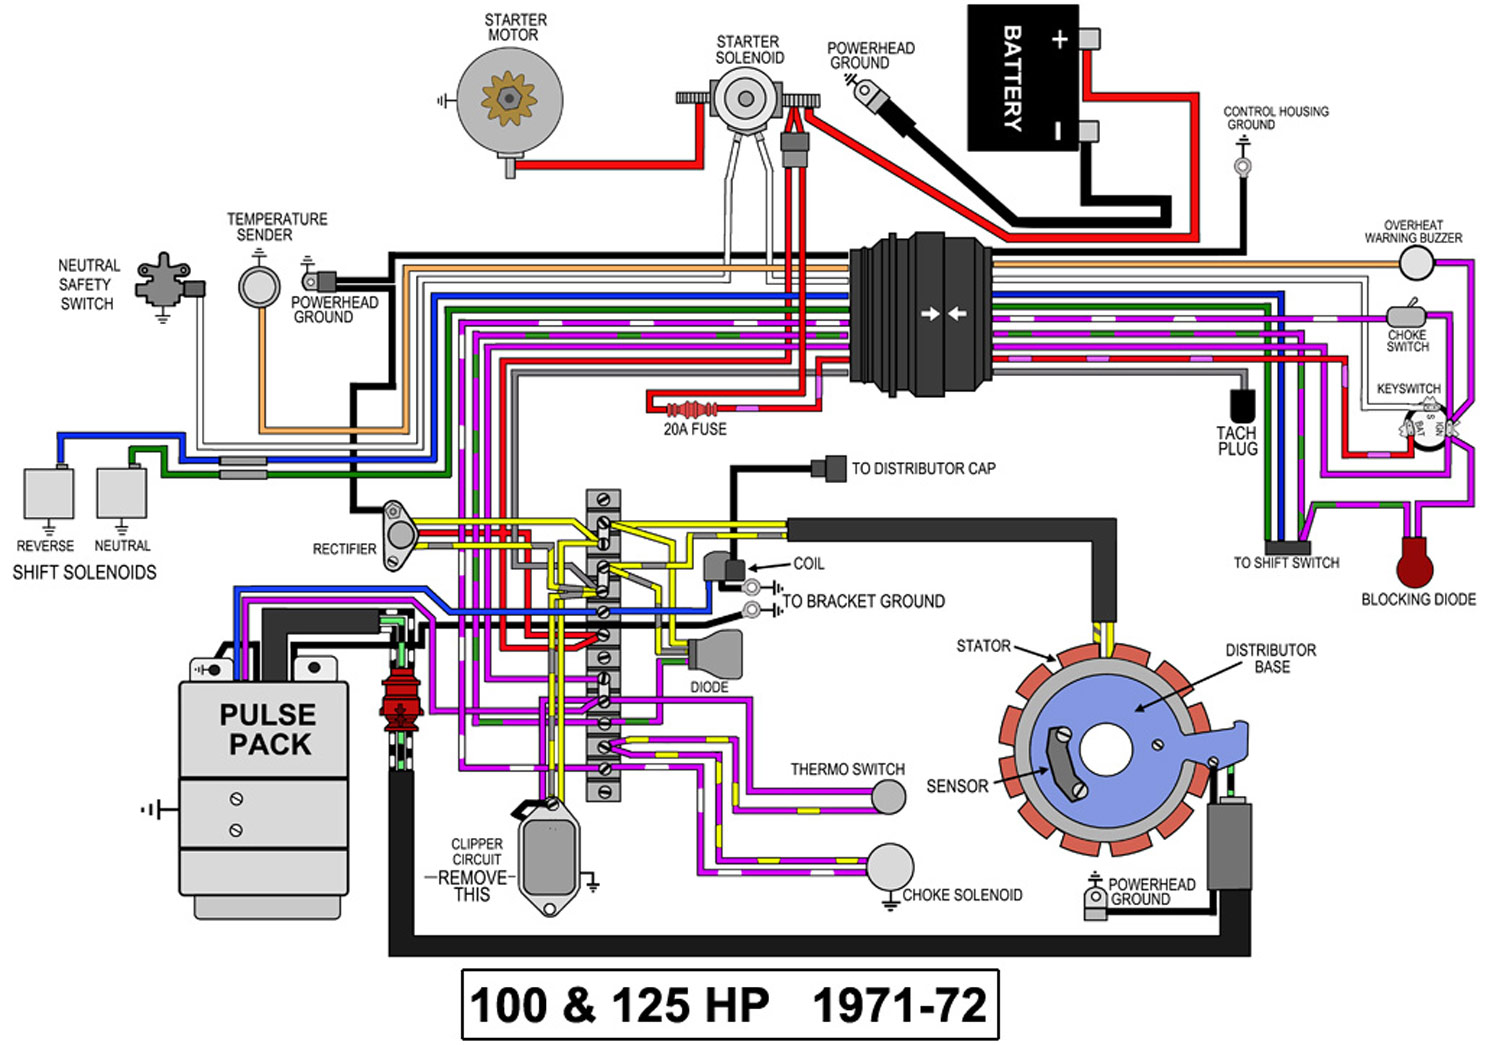 40 Hp Johnson Wiring Diagram Library Mercury Outboard Hecho Evinrude 90 1990 Free Engine Yamaha 50 1989